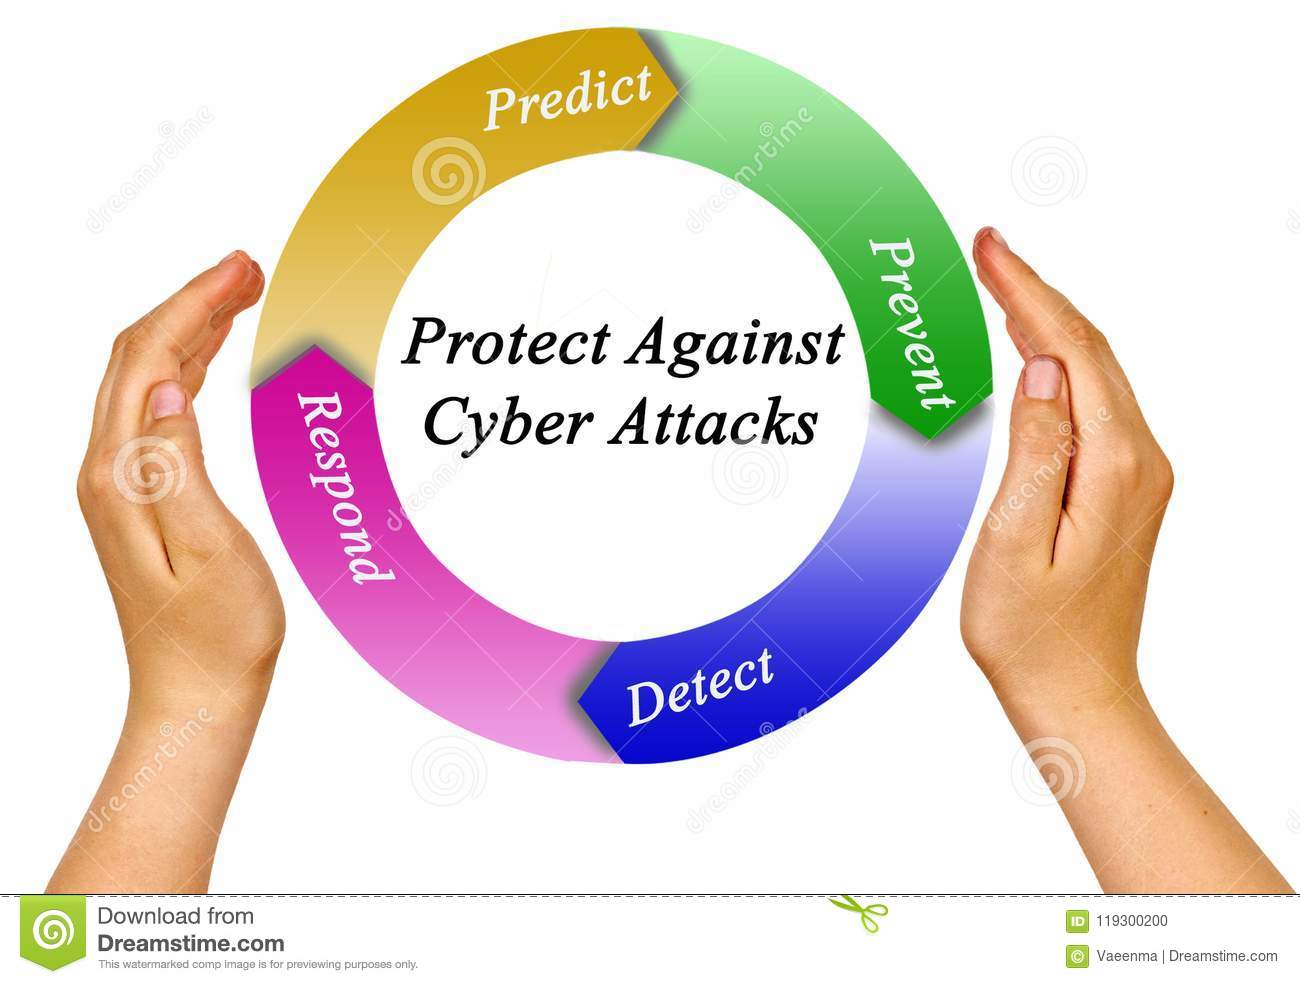 Protection Against Cyber Attacks